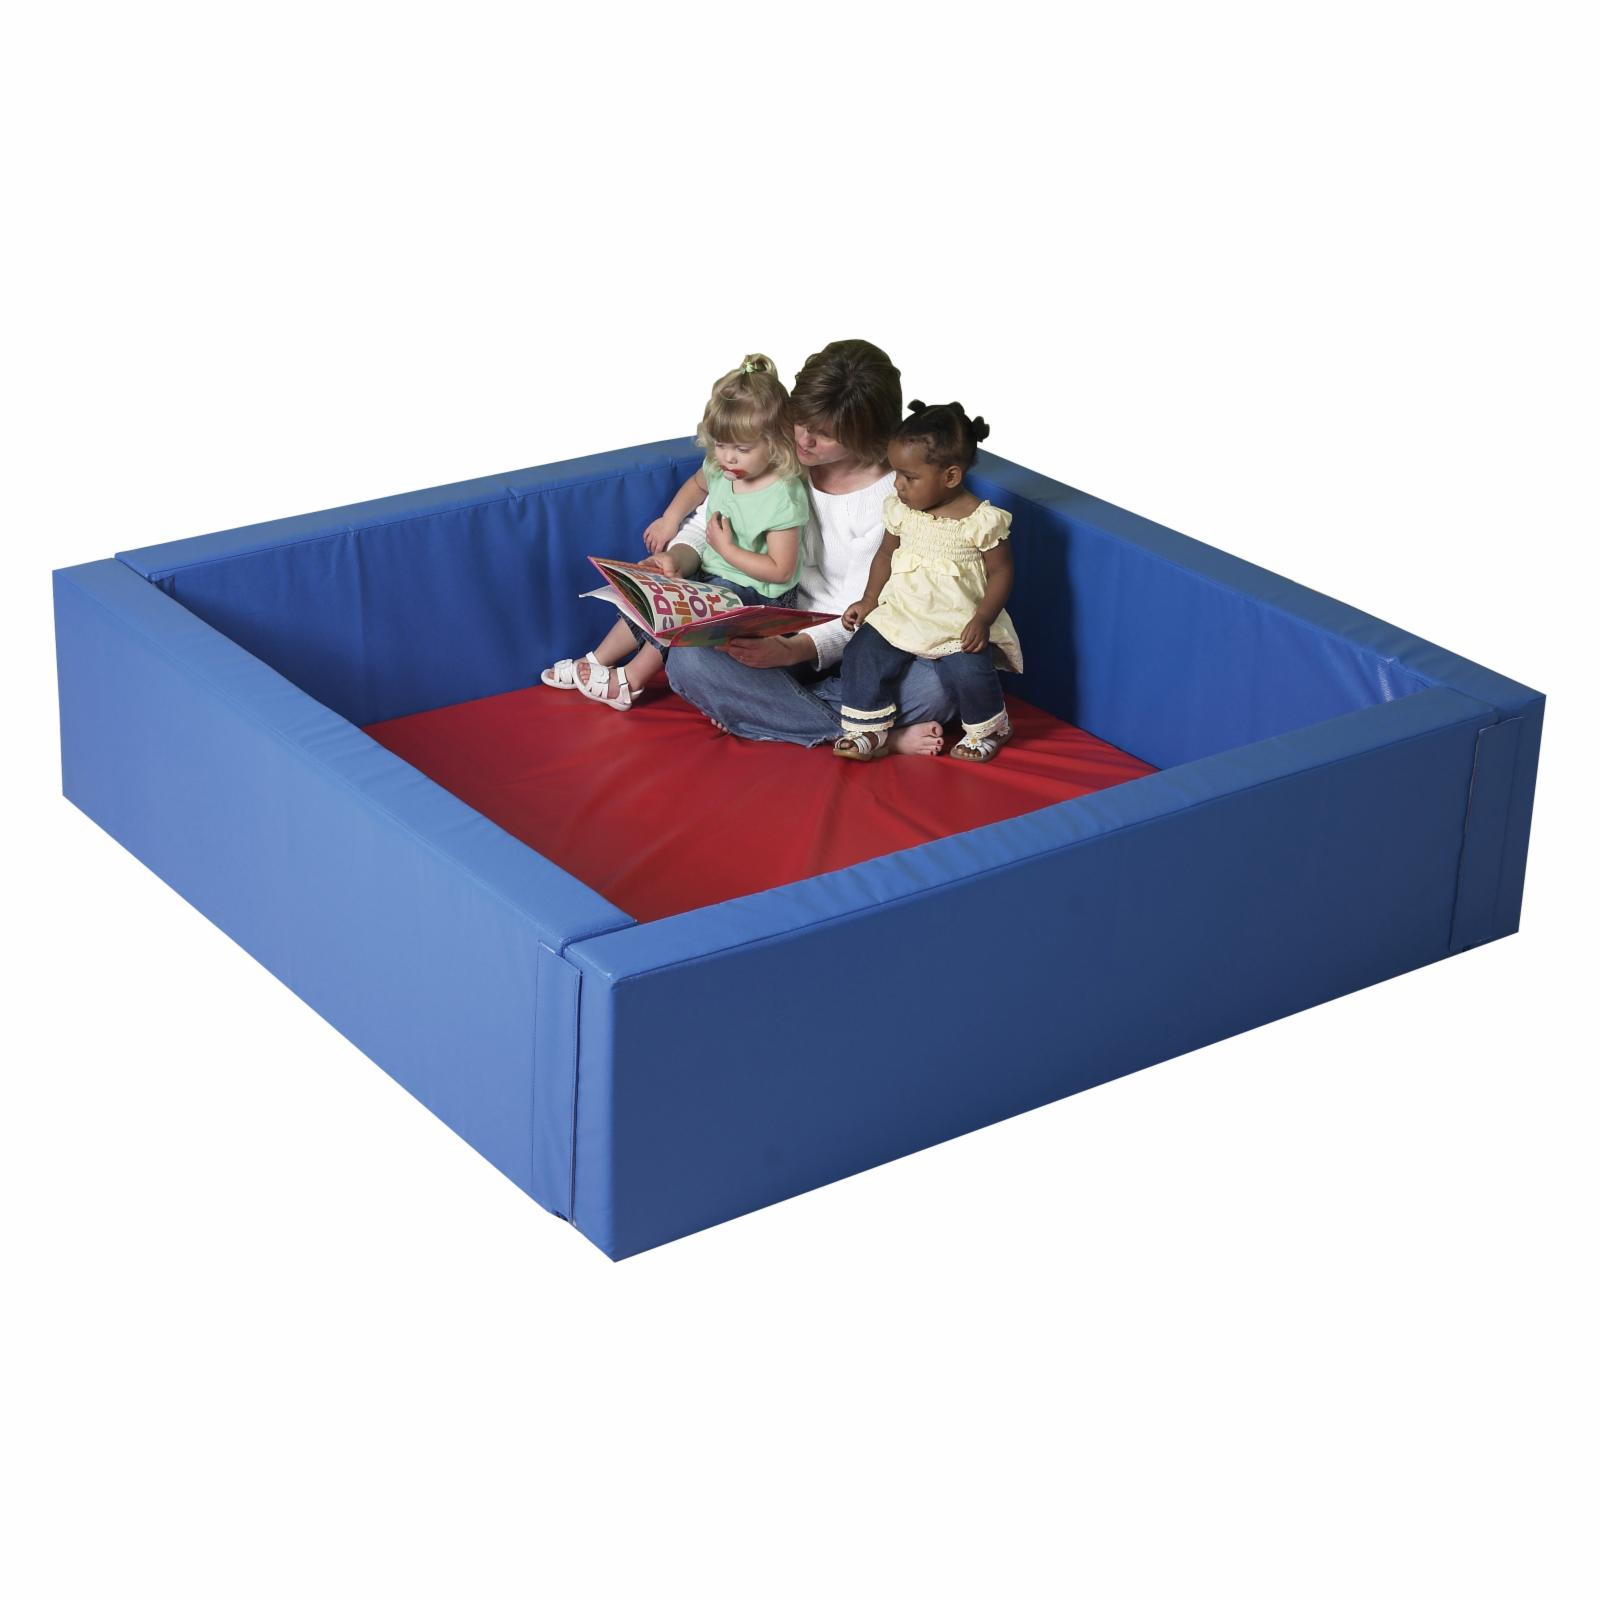 CHILDREN'S FACTORY Infant Toddler Play Yard - CF320-107